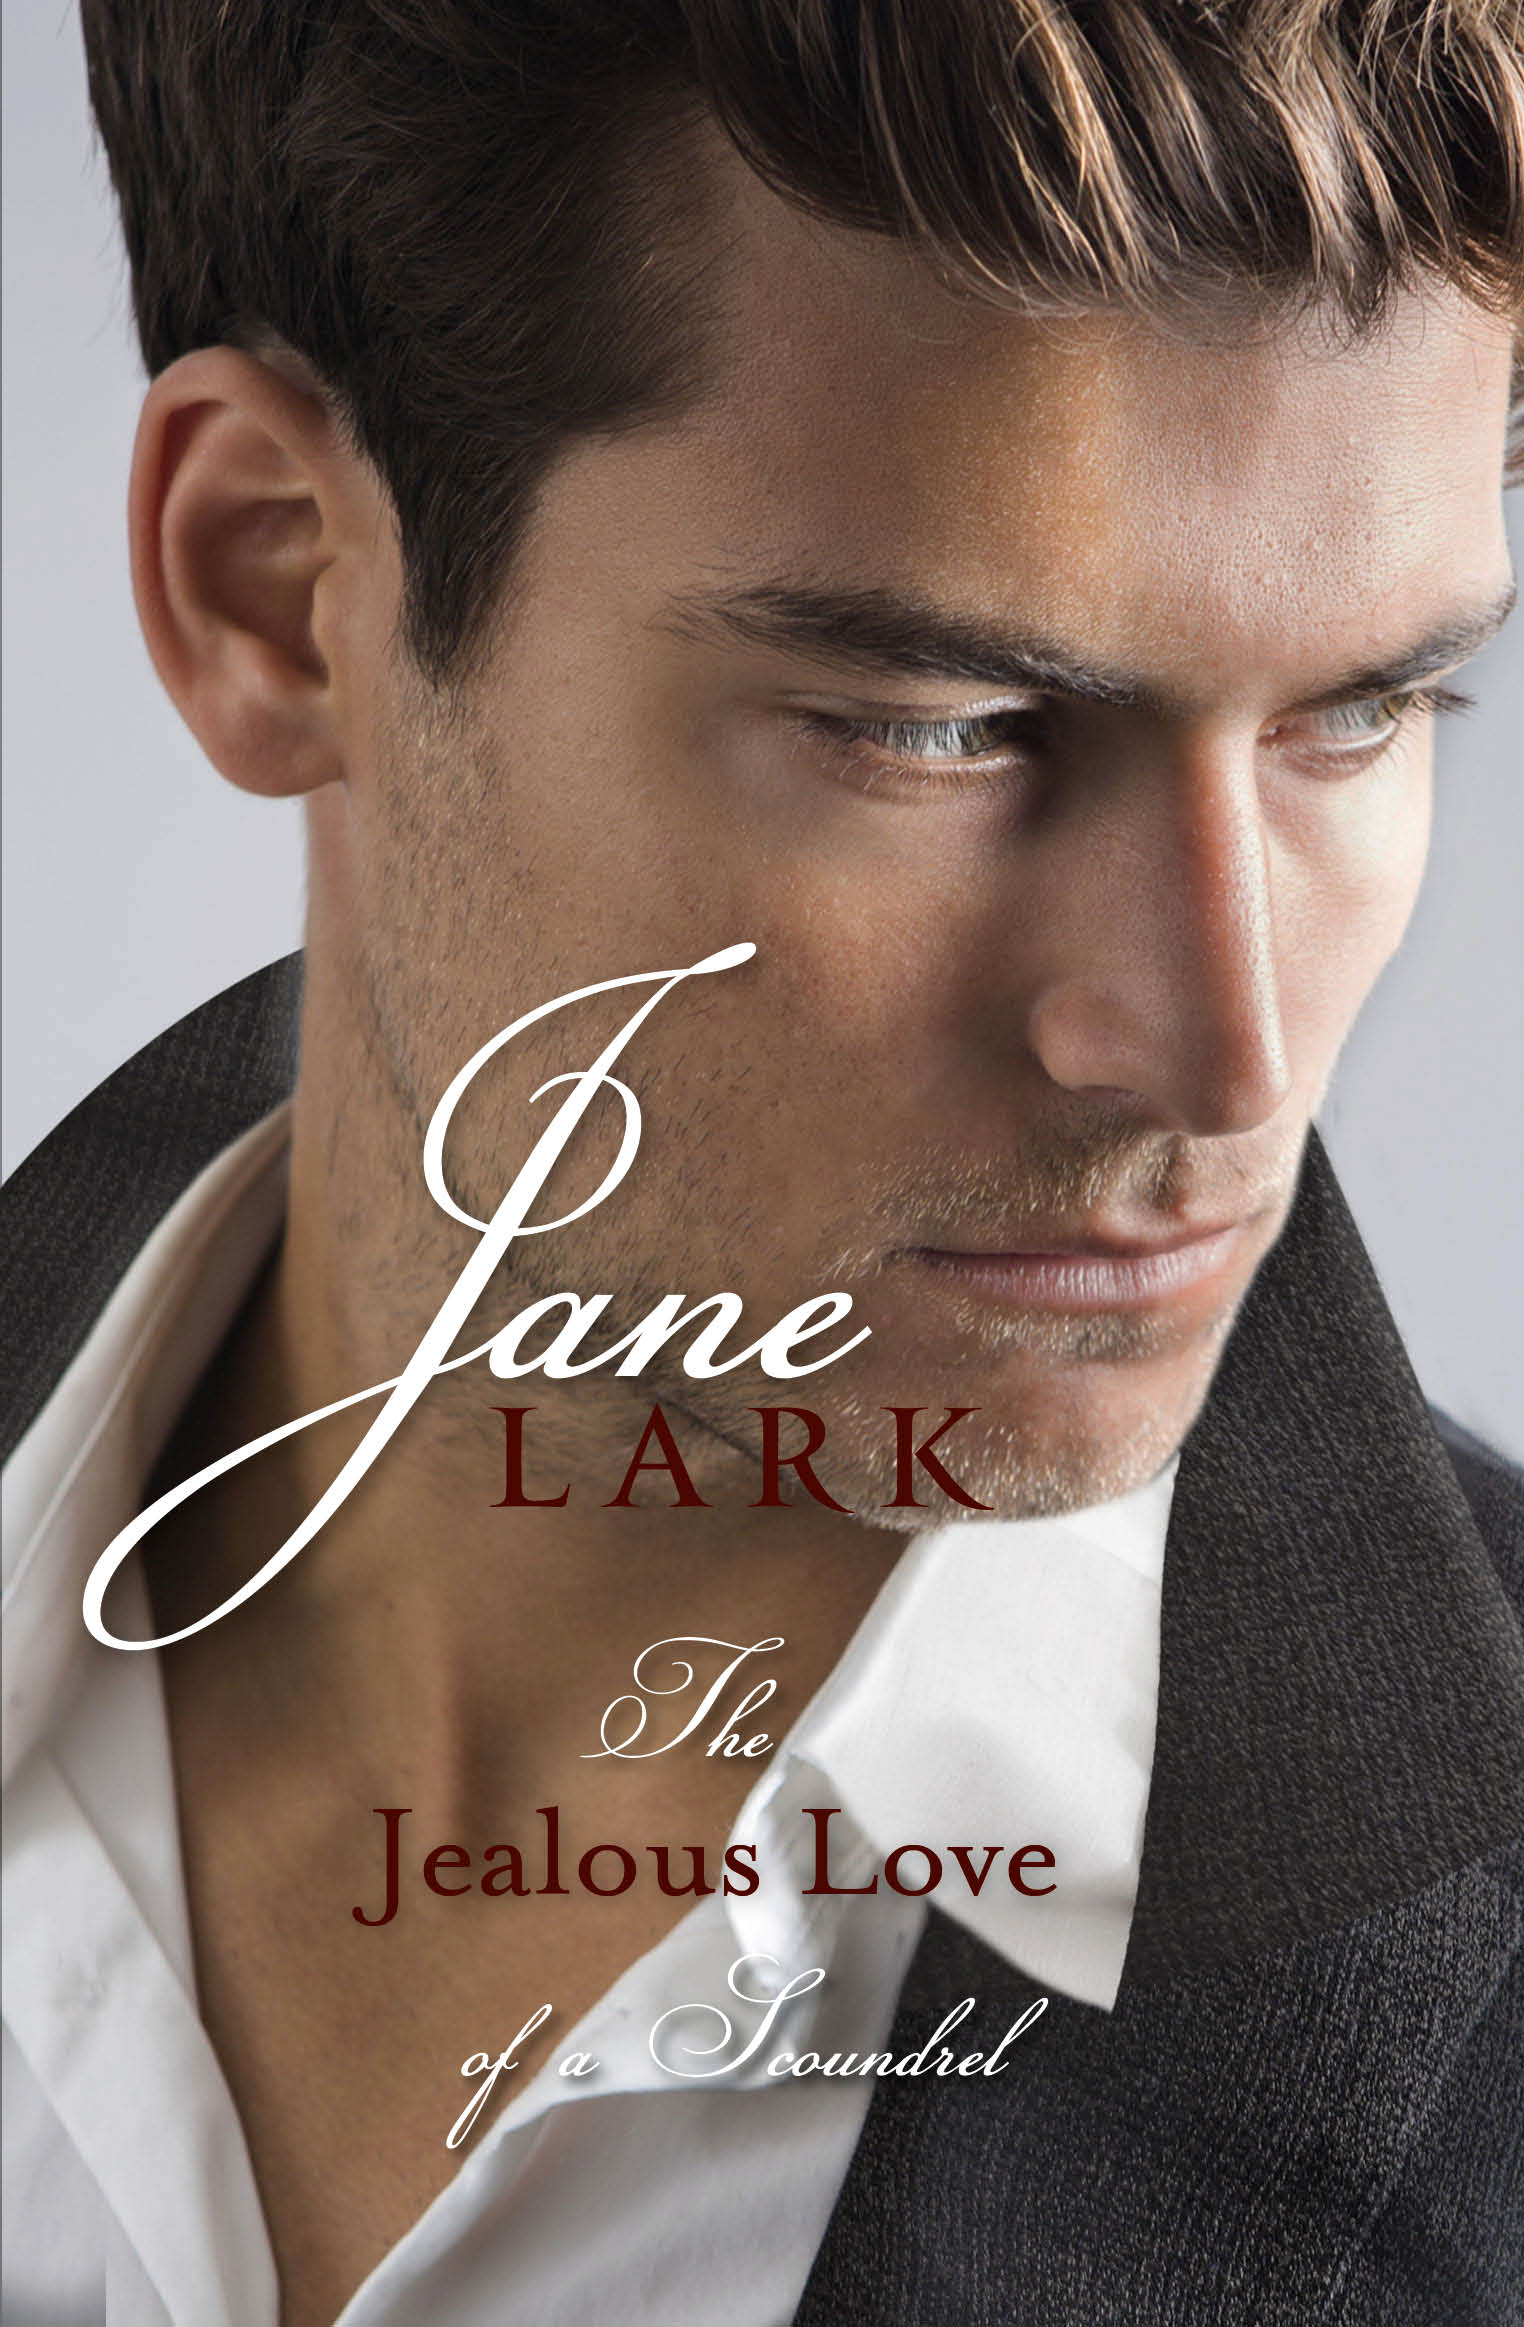 The Jealous Love of a Scoundrel by Jane Lark